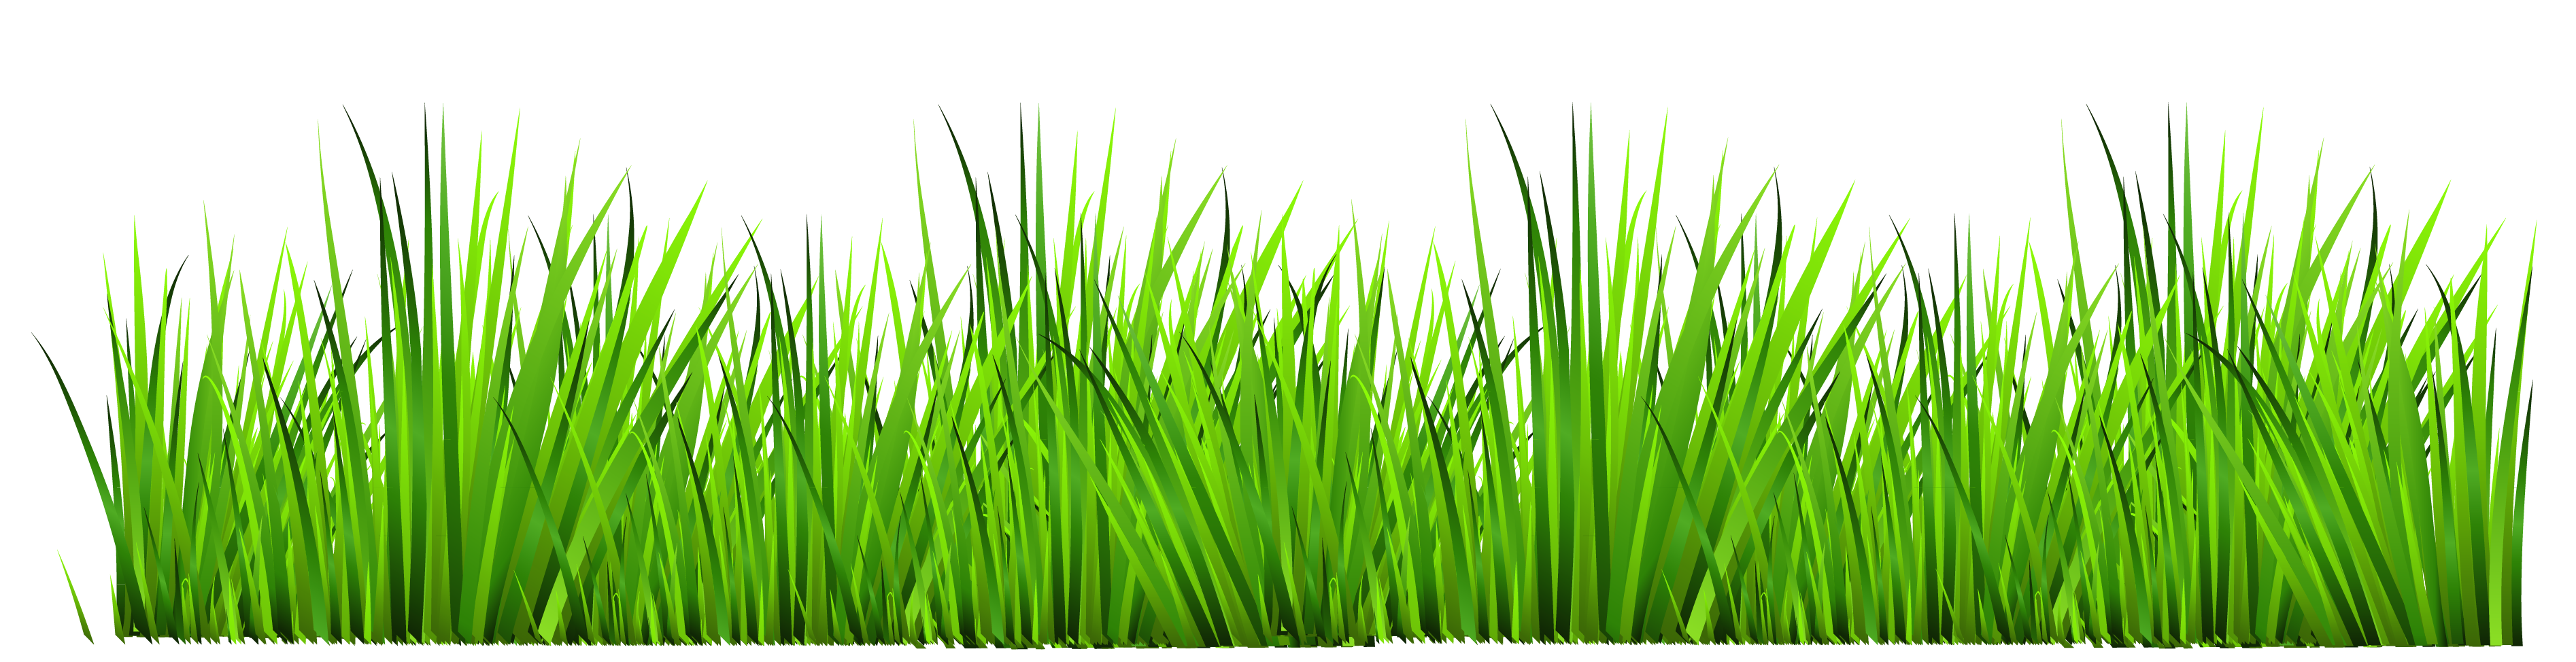 Grass graphic clipart clip art royalty free library Grass Clipart | Free Download Clip Art | Free Clip Art | on ... clip art royalty free library